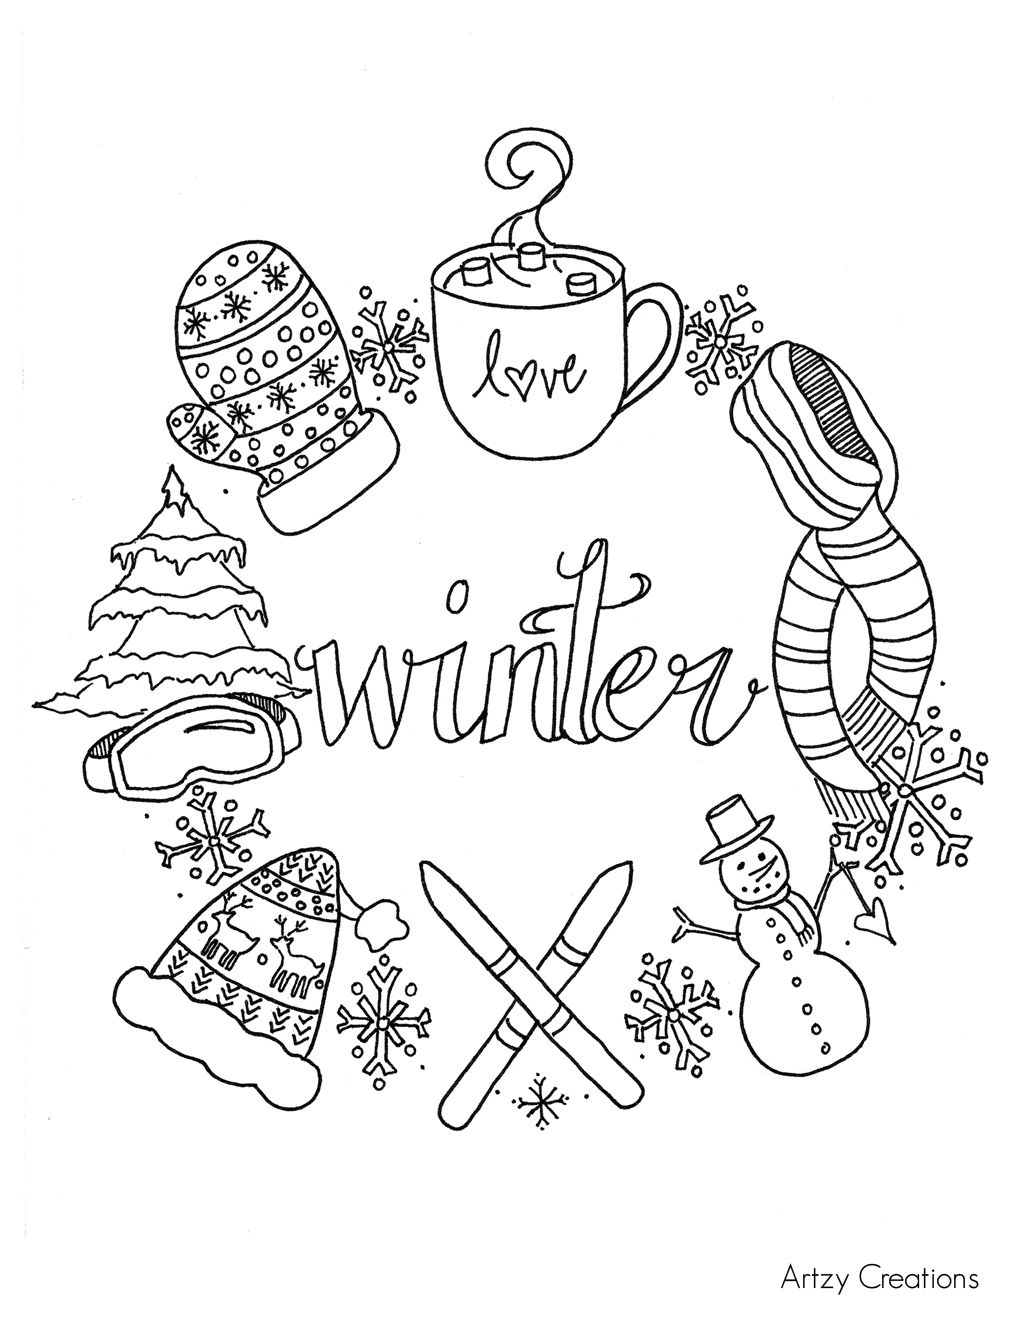 Free-Winter-Coloring-Page-Artzy-Creations-Page.jpg 1,020×1,320 ...